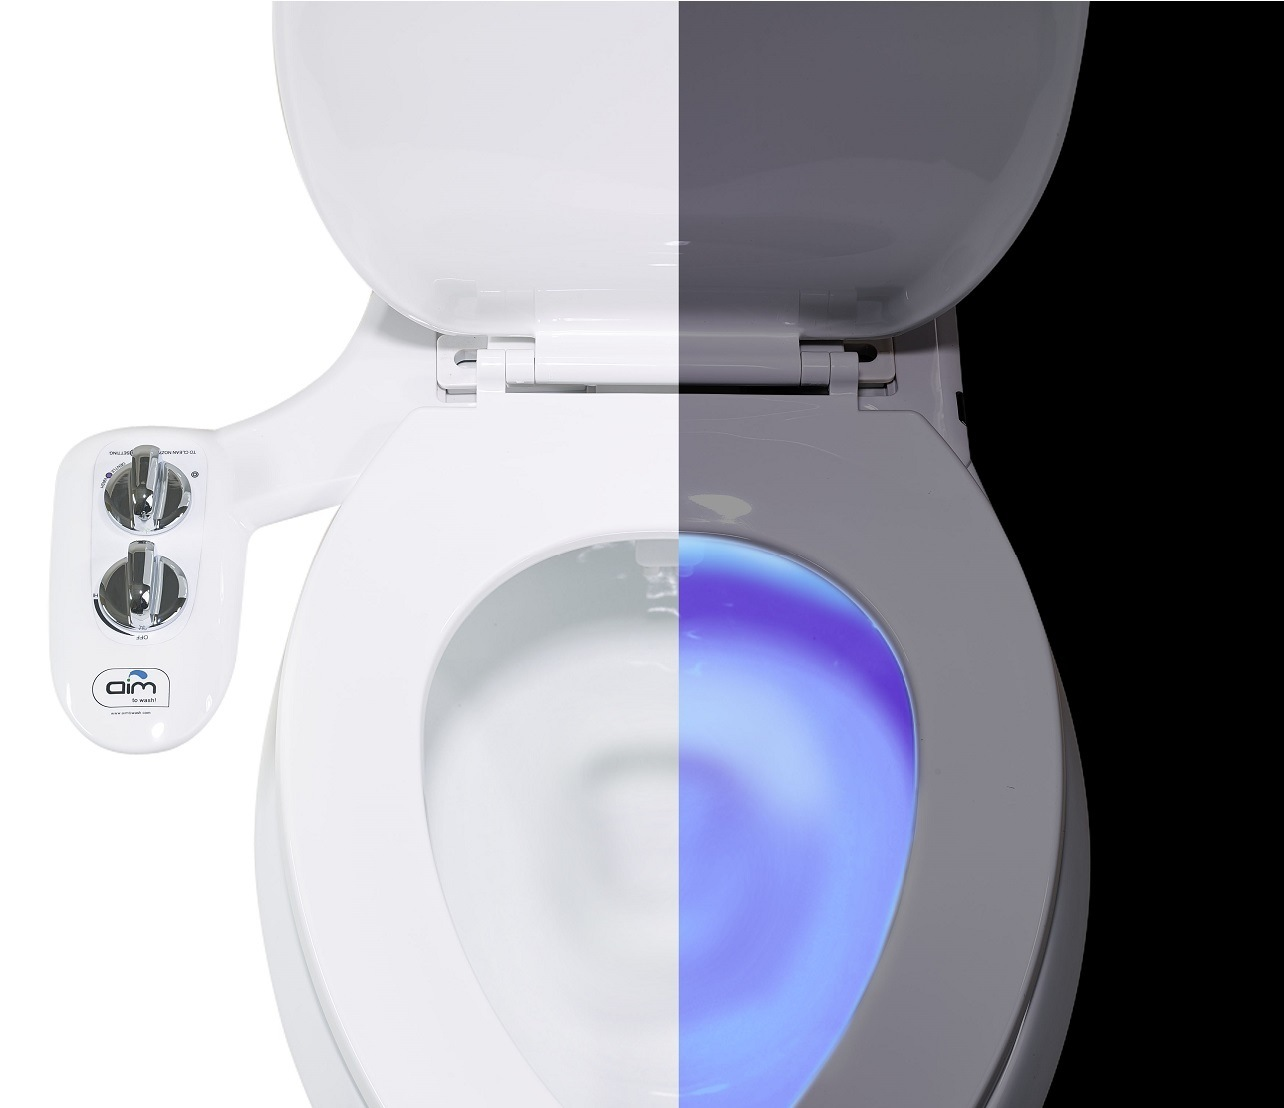 Aim+To+Wash%21+Self+Cleaning+Bidet+Attachment+With+Night+Light